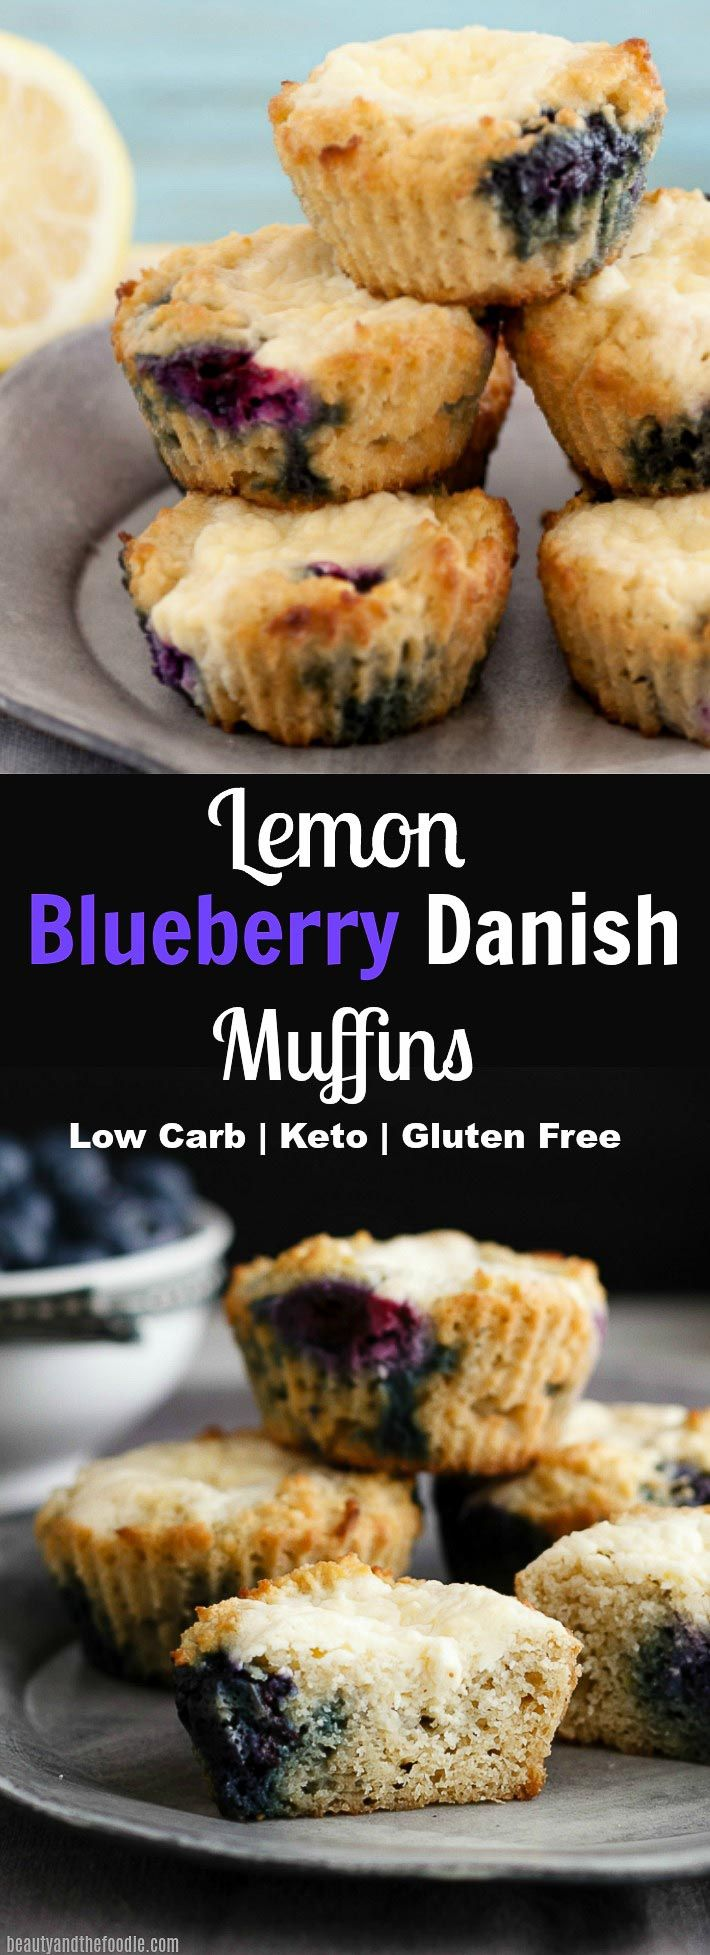 A low carb gluten free lemon berry muffin with a cheese danish filling.